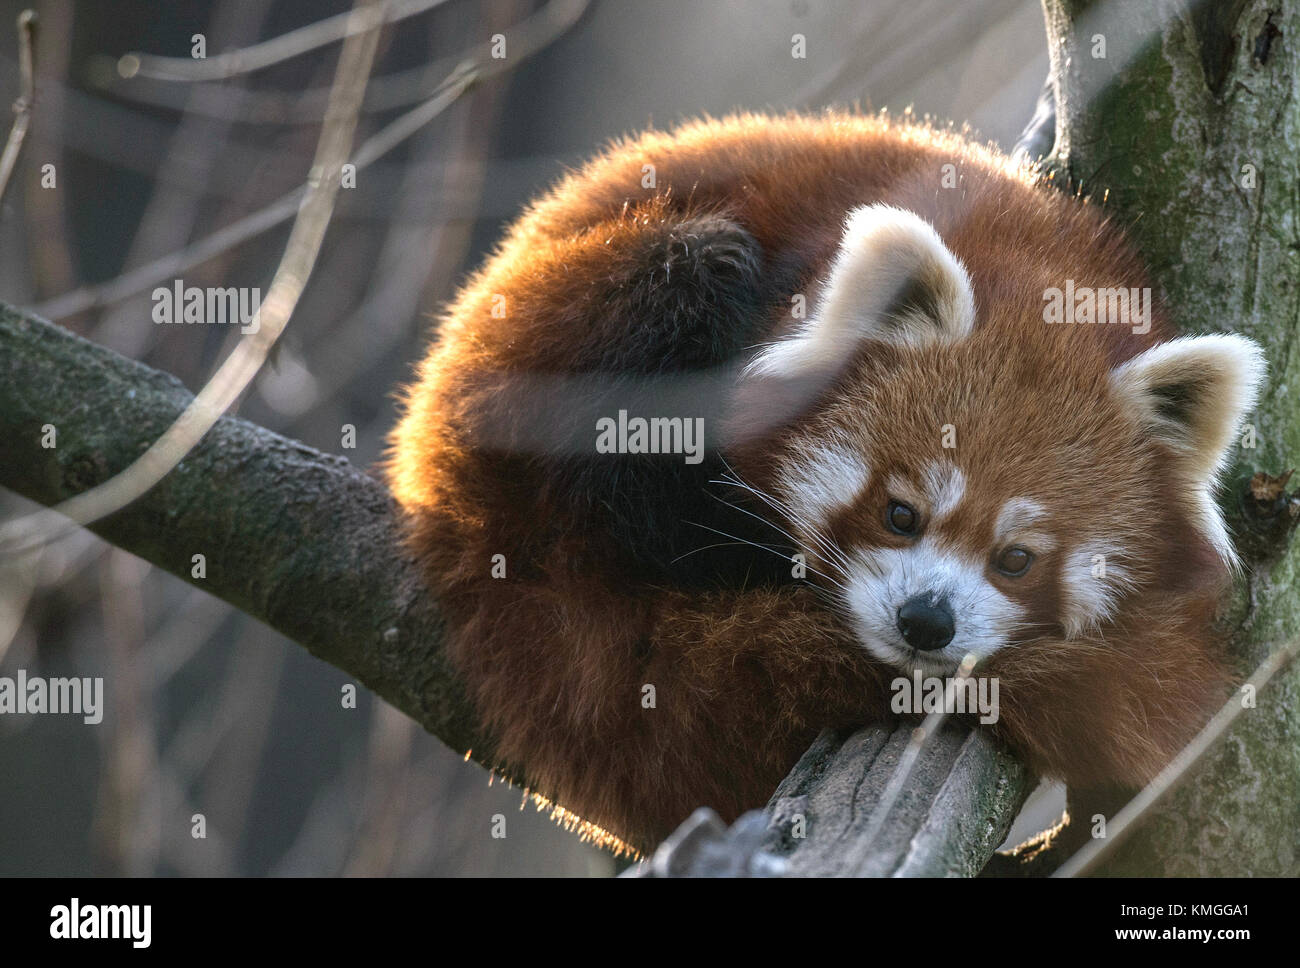 Berlin, Germany. 7th Dec, 2017. A red panda reclines on a tree branch within its cage at the zoo in Berlin, Germany, - Stock Image